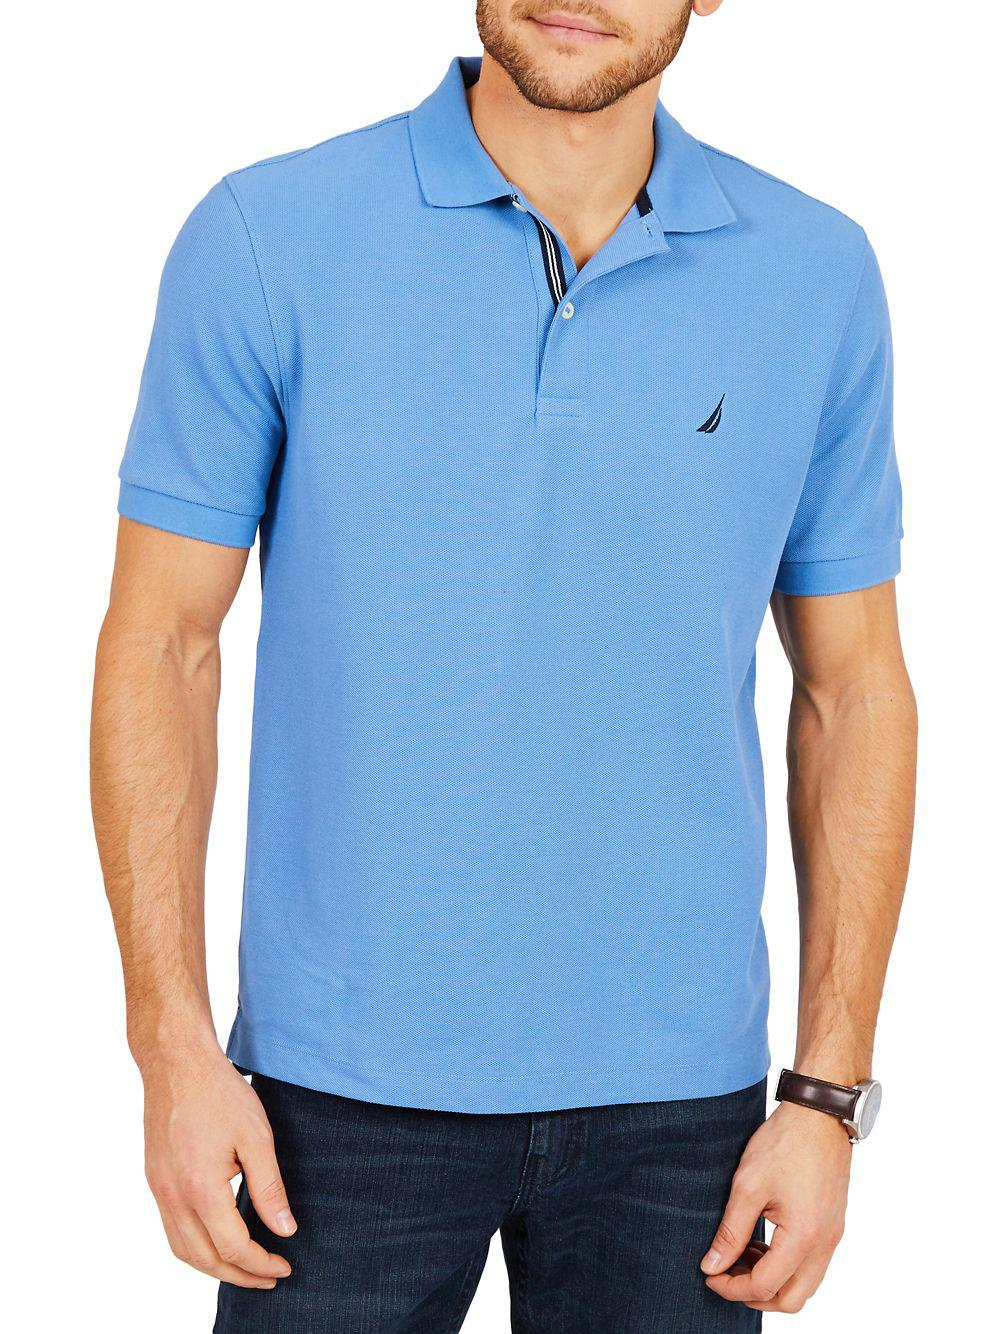 Lyst Nautica Classic Fit Moisture Wicking Polo Shirt In Blue For Men